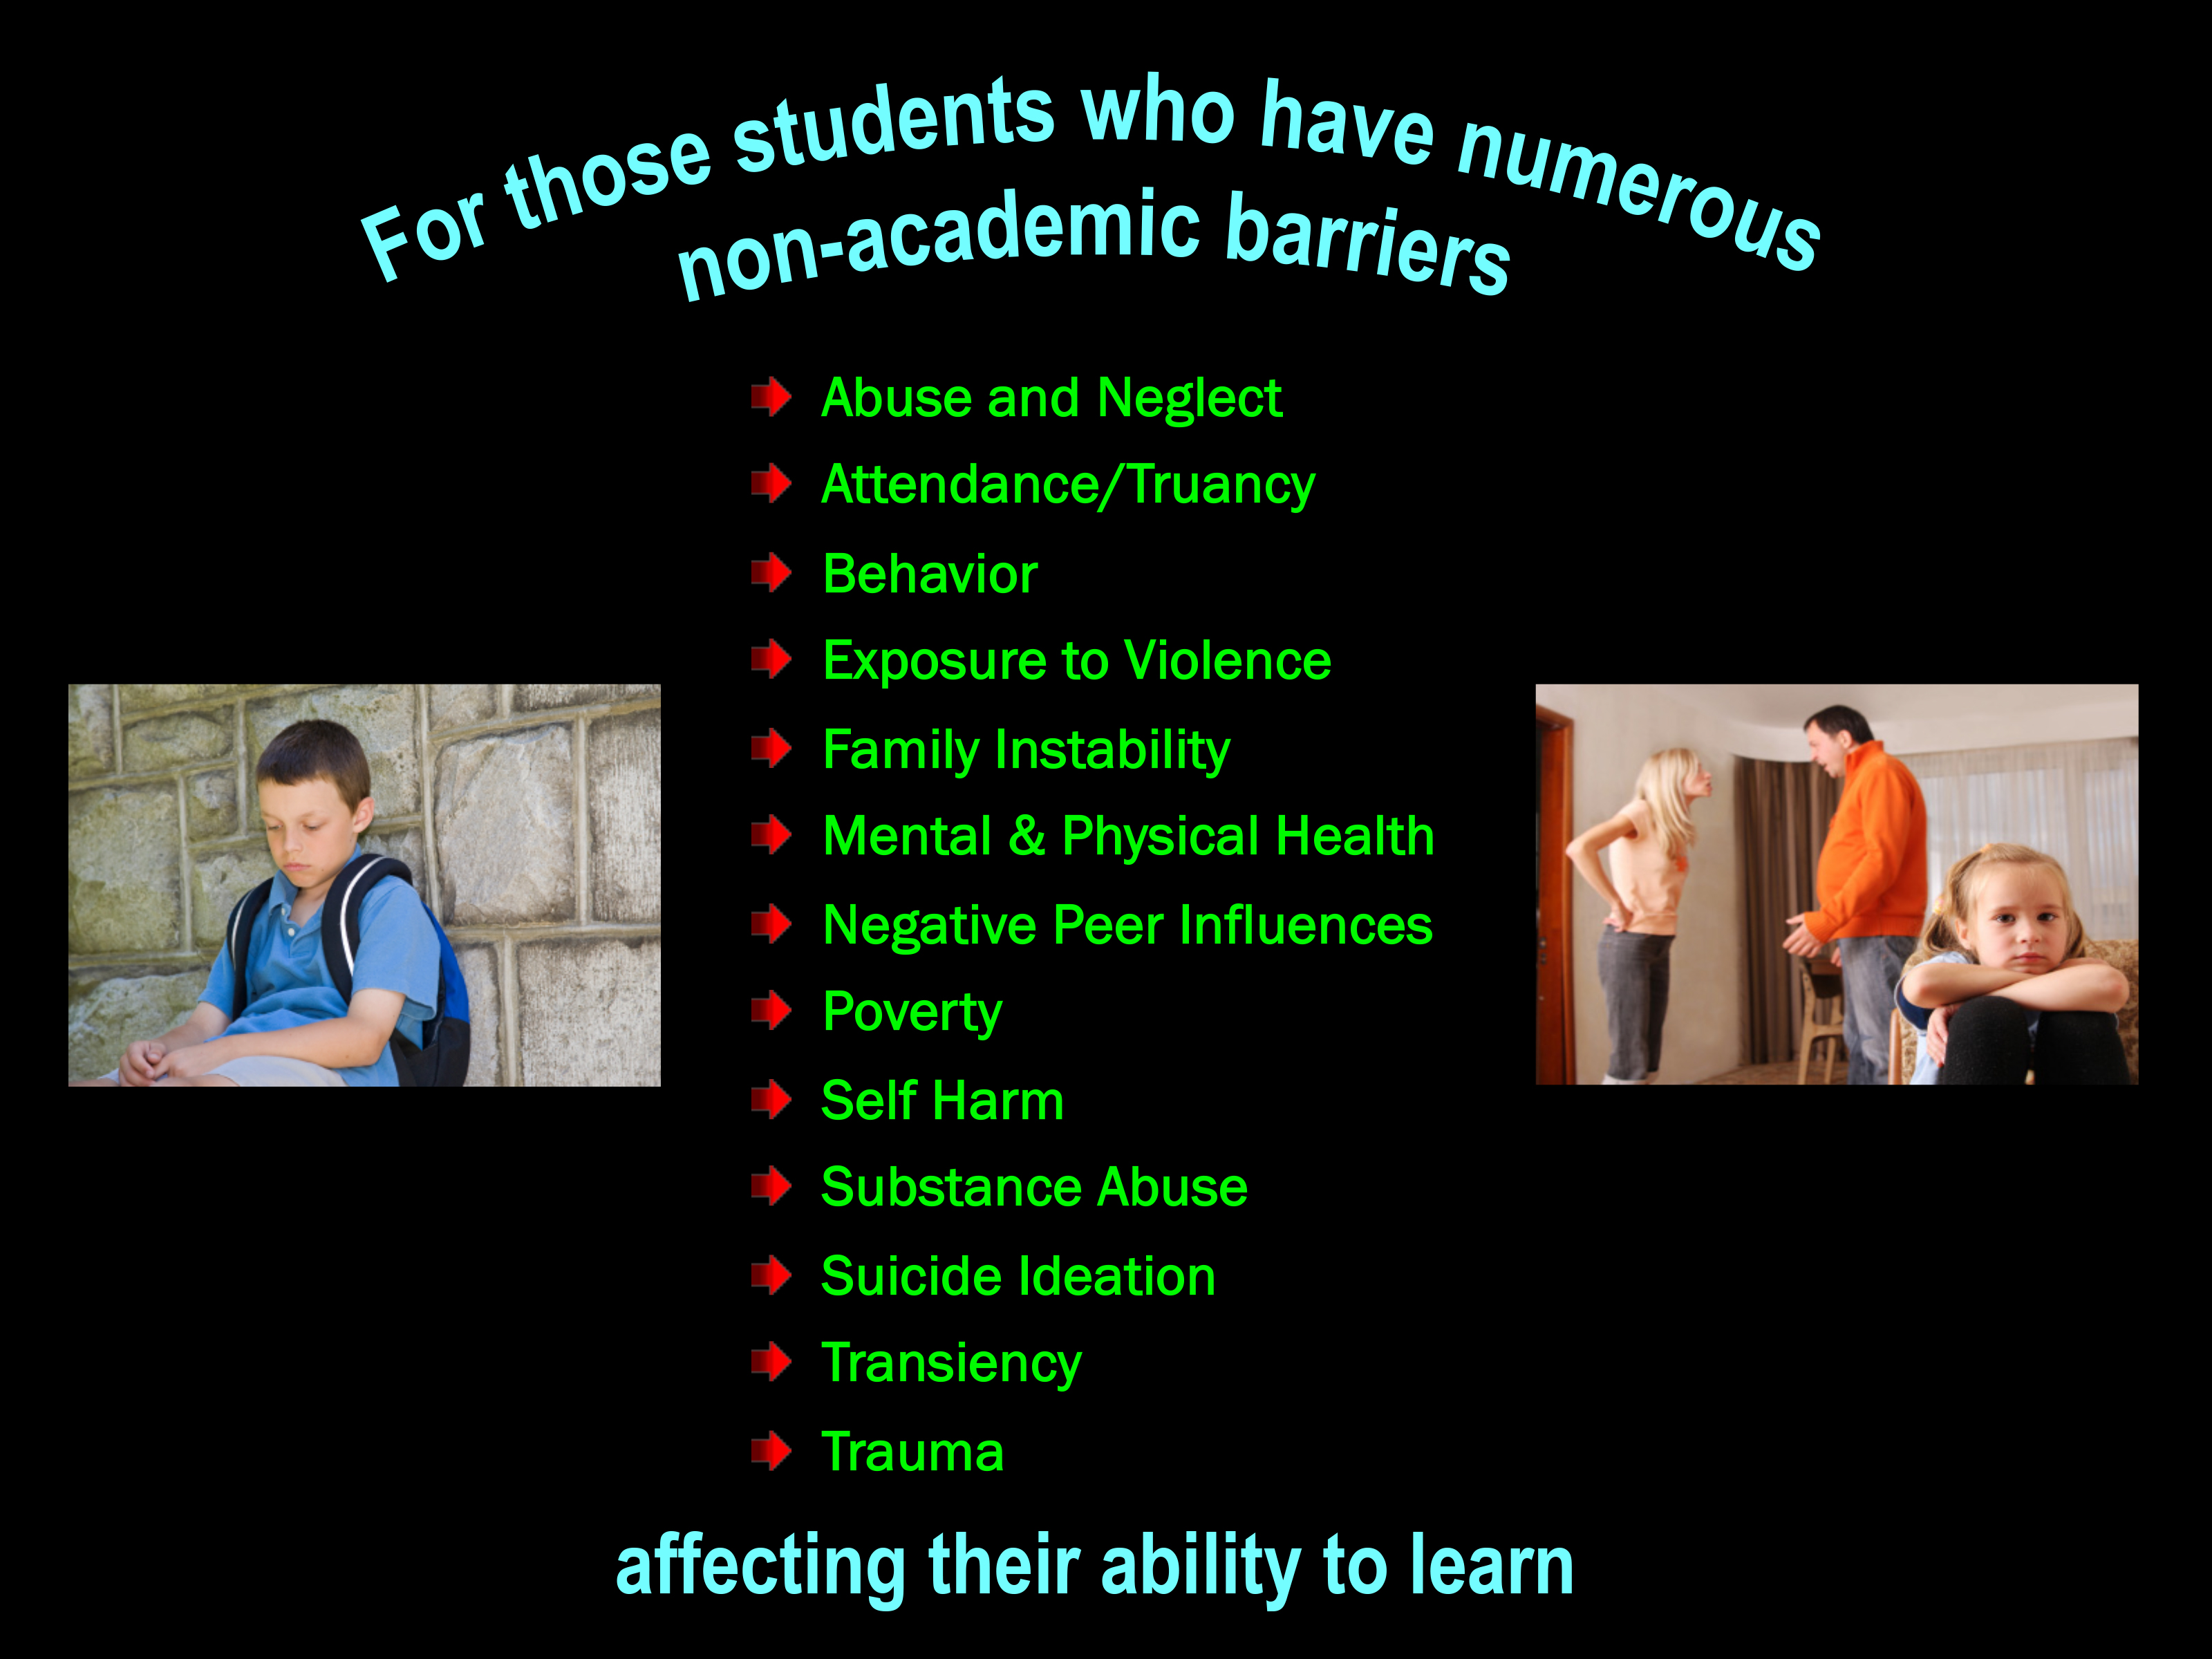 For students who have numerous non-academic barriers